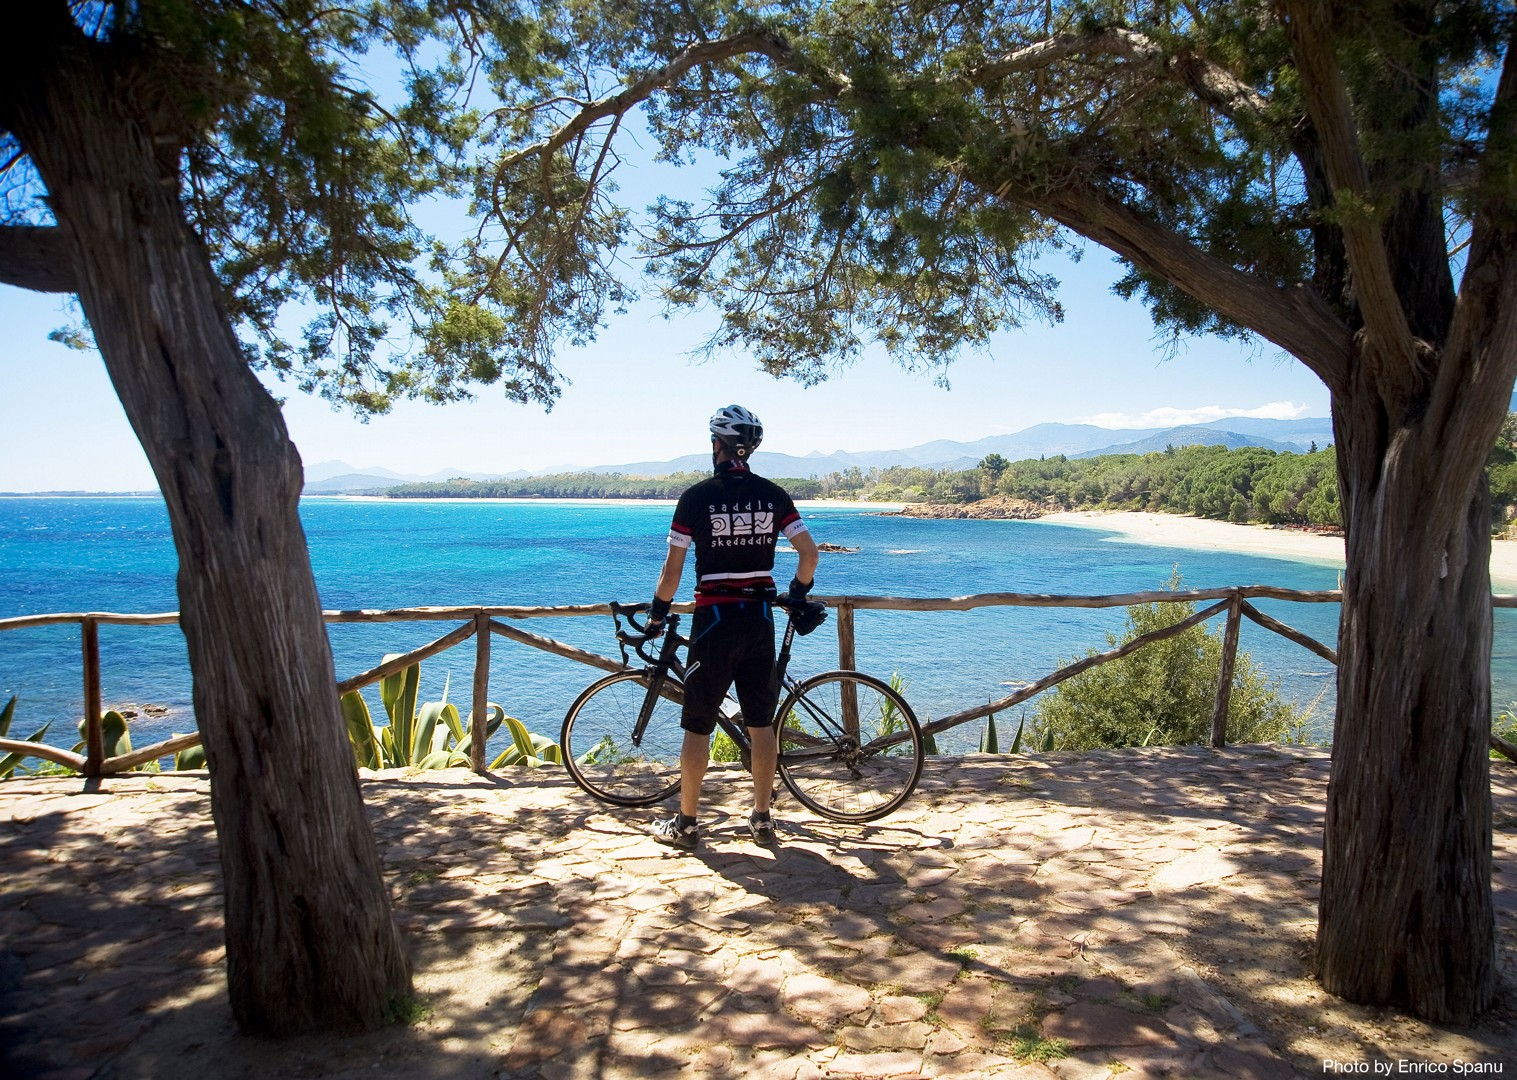 Guided-Road-Cycling-Holiday-Sardinia-Sardinian-Mountains-Forests-and-beautiful-countryside.jpg - Italy - Sardinia - Sardinian Mountains - Guided Road Cycling Holiday - Road Cycling